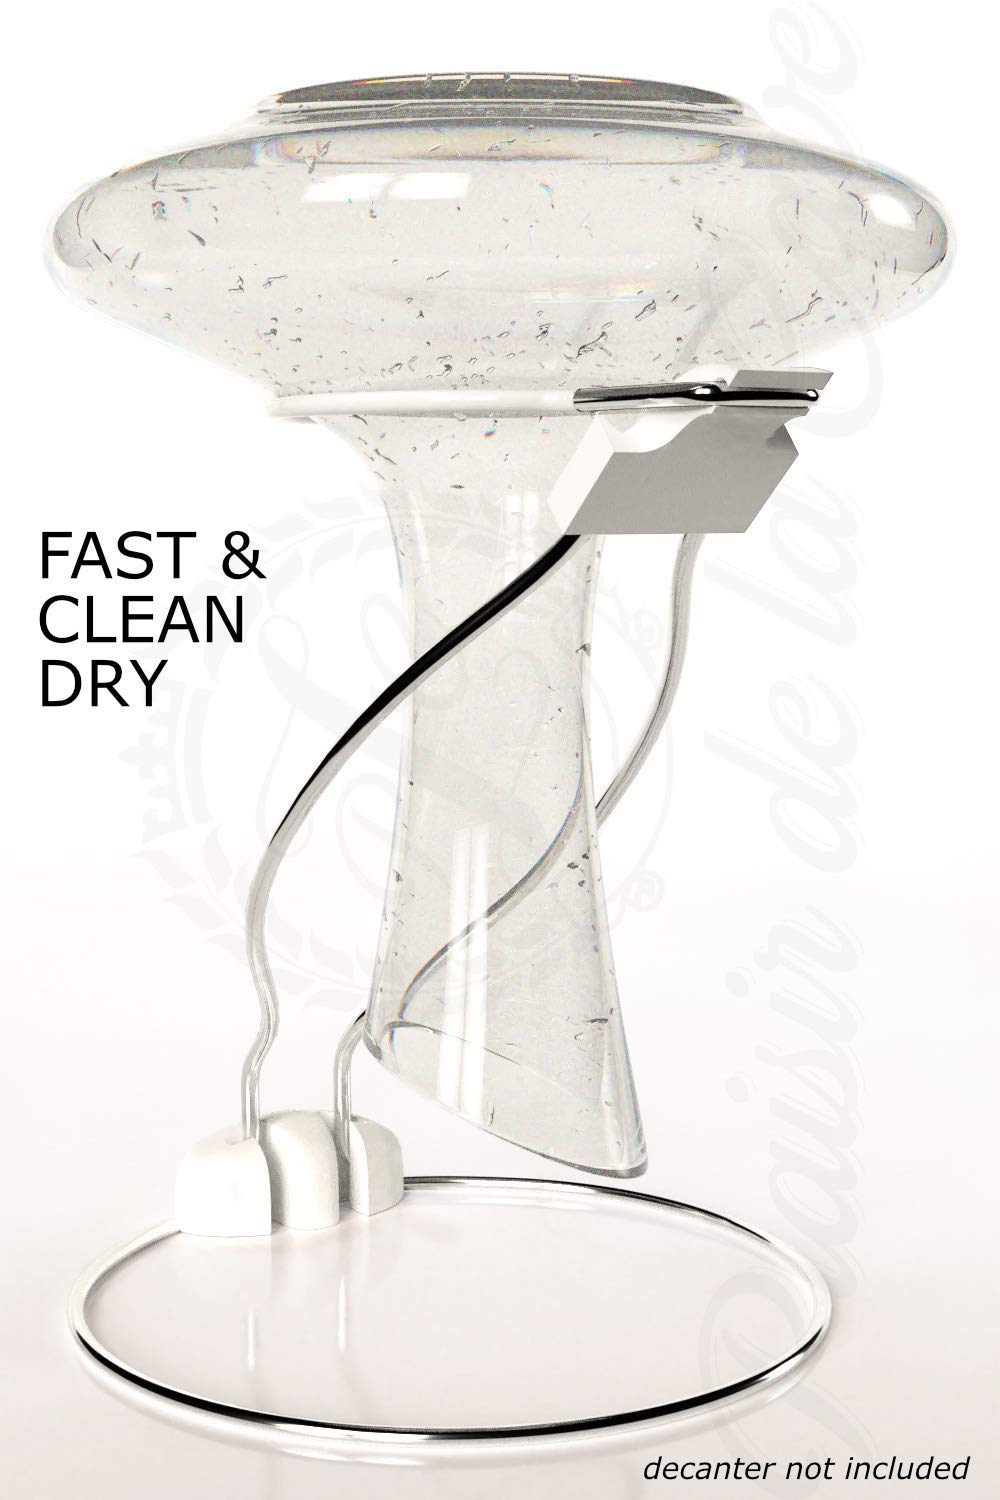 Plaisir de la Cave 2in1 Wine Decanter Drying Stand incl Fast Spotless Carafe Dryer /& Compact Folding Rack for Safe Storage Non Slip /& Anti Scratch Black Rubber Top